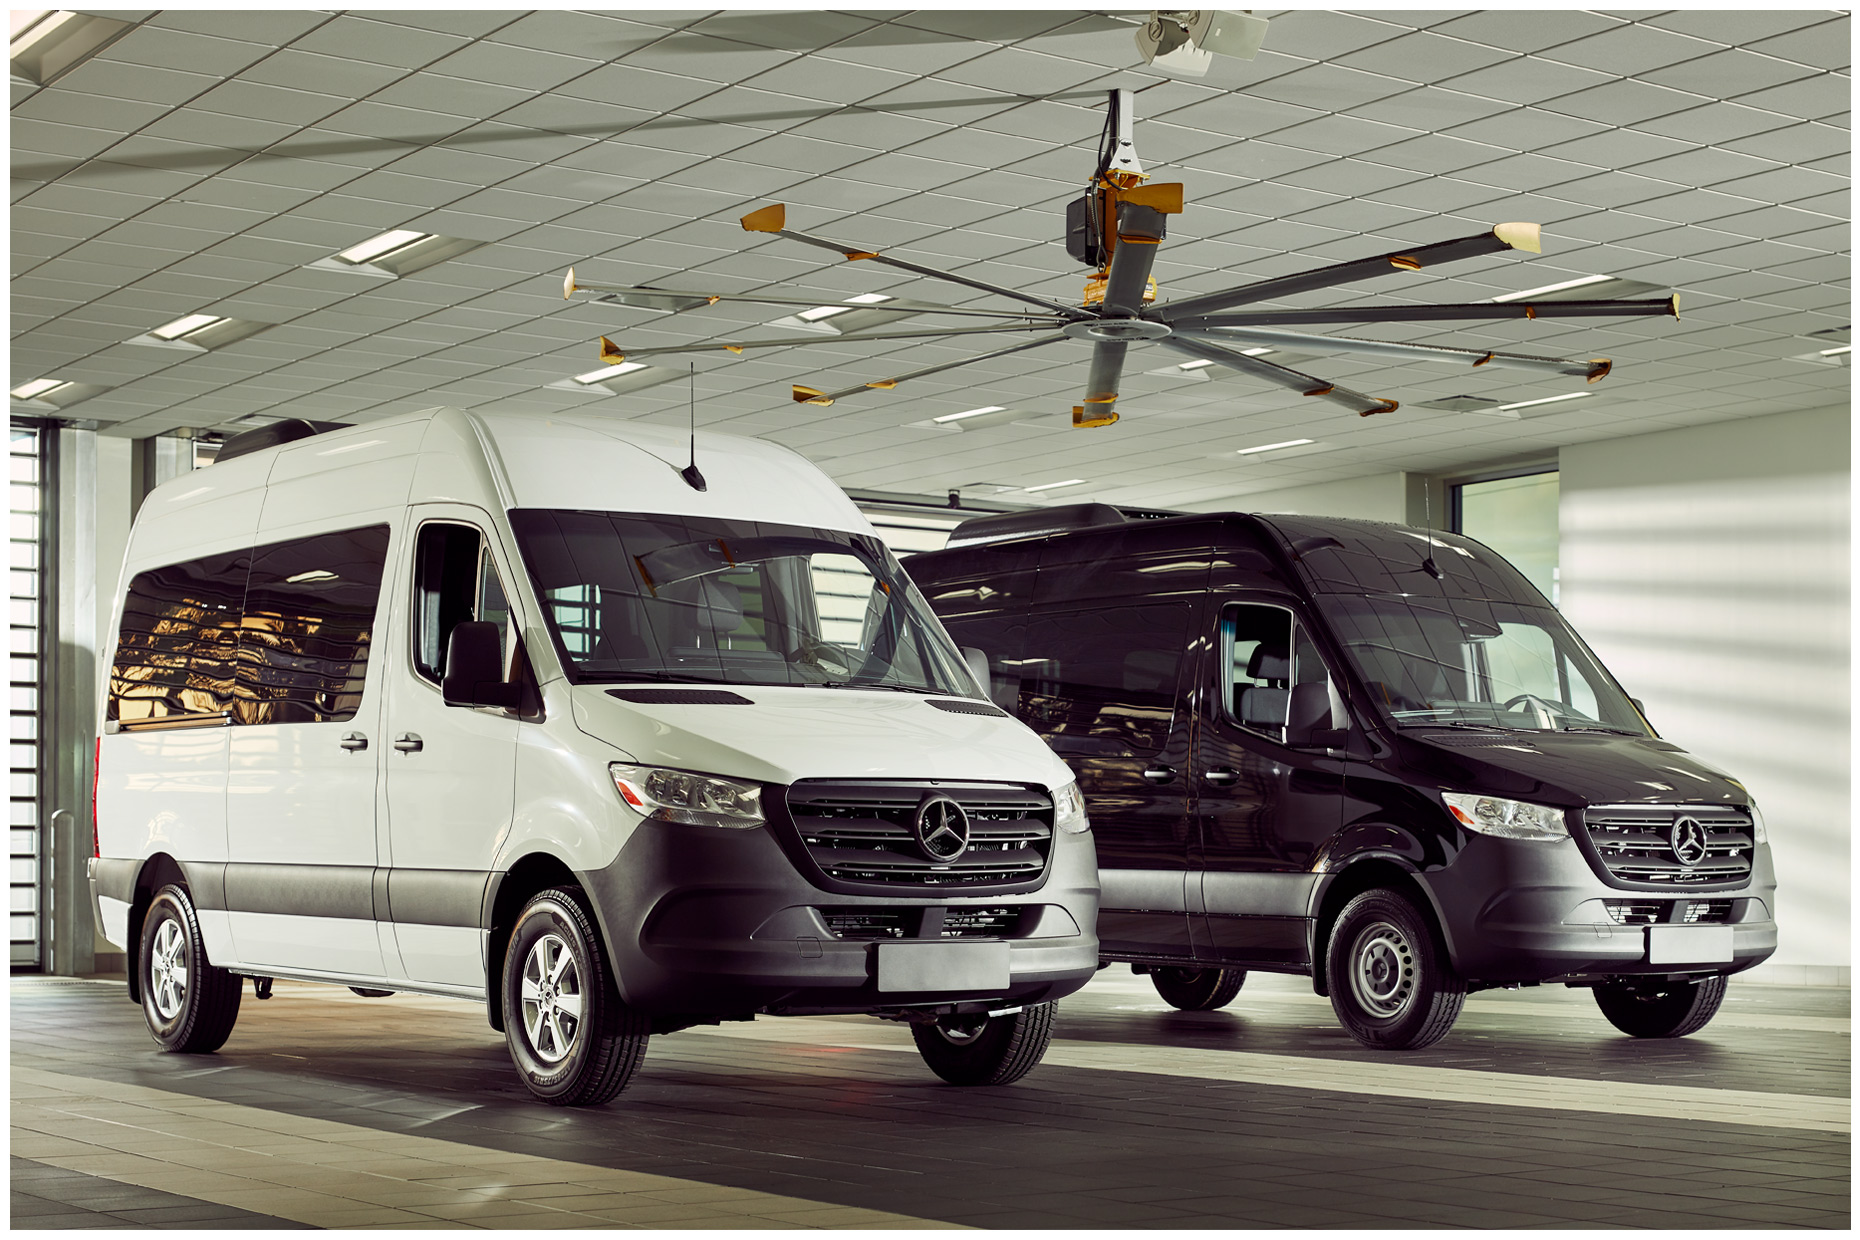 Custom Image Library for Mercedes-Benz Sprinter Vans